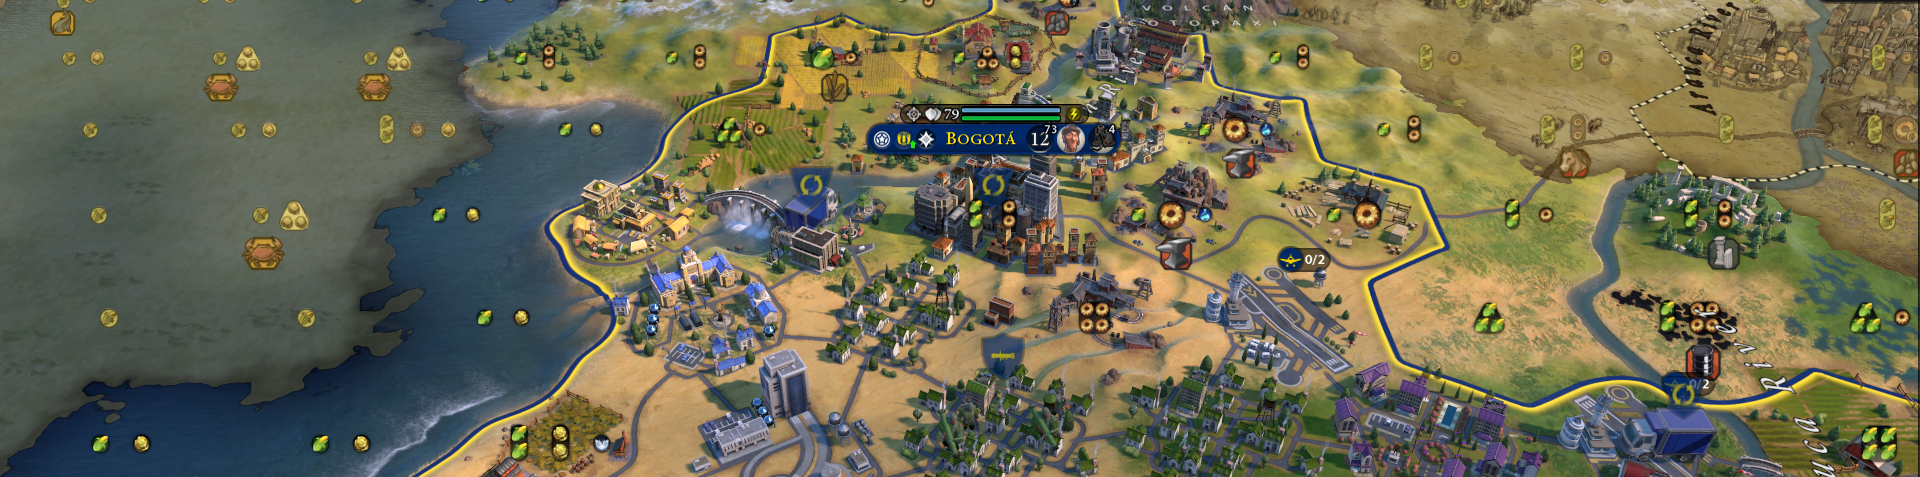 Civilization VI. Image Credit: Firaxis Games.